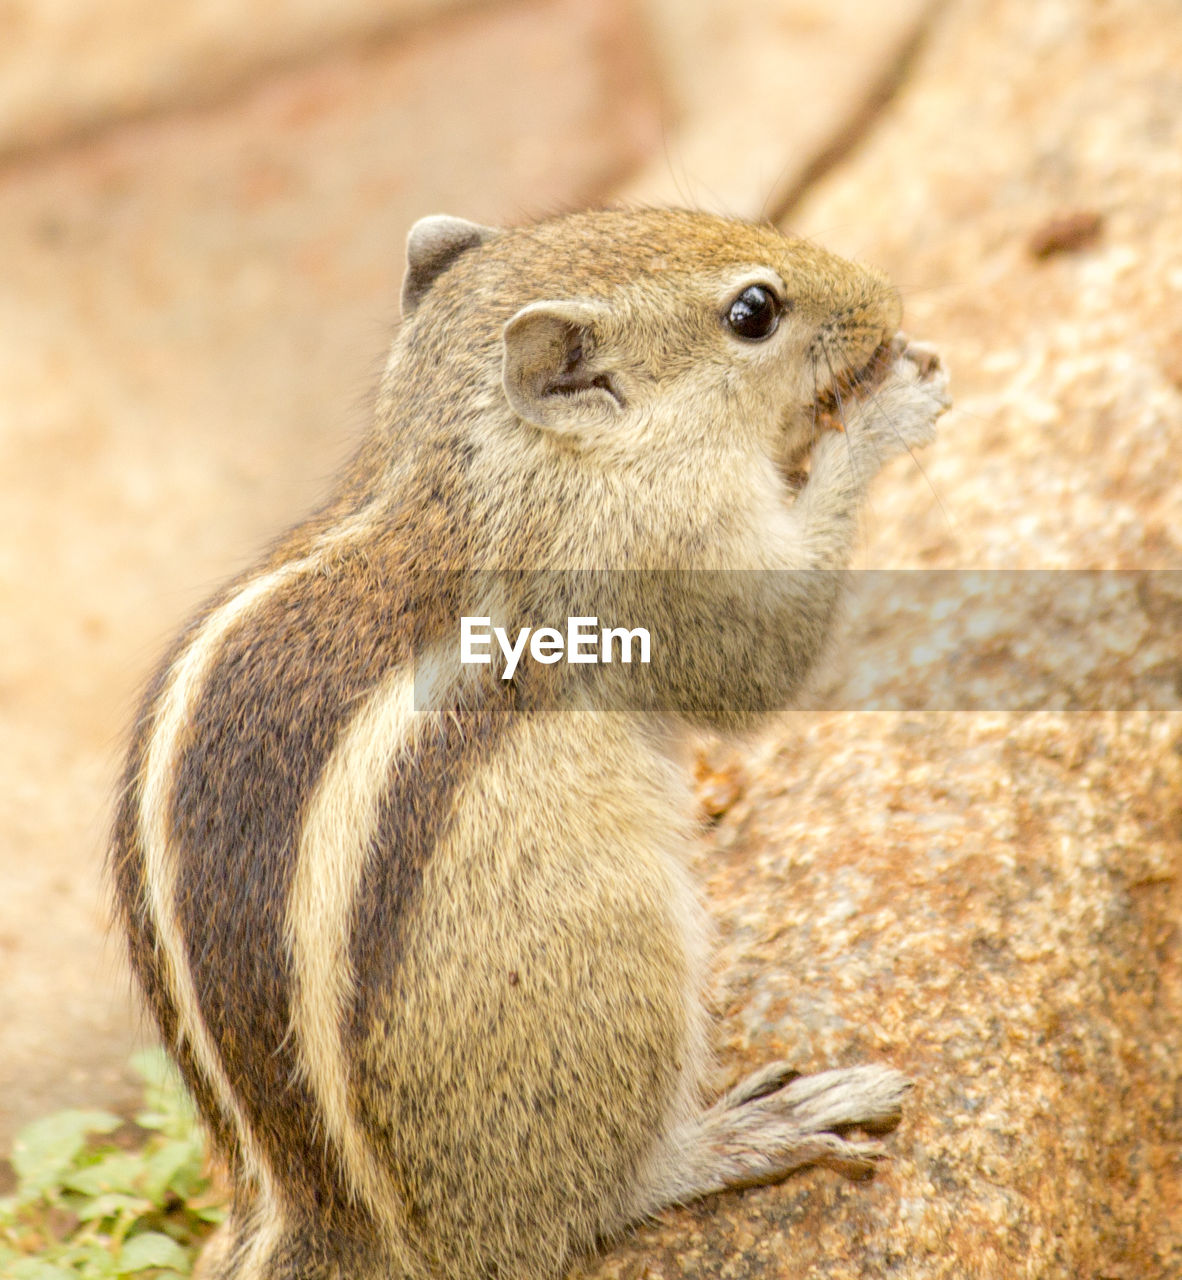 animal wildlife, animals in the wild, one animal, mammal, no people, vertebrate, rodent, focus on foreground, close-up, looking, day, nature, looking away, land, outdoors, field, sitting, whisker, herbivorous